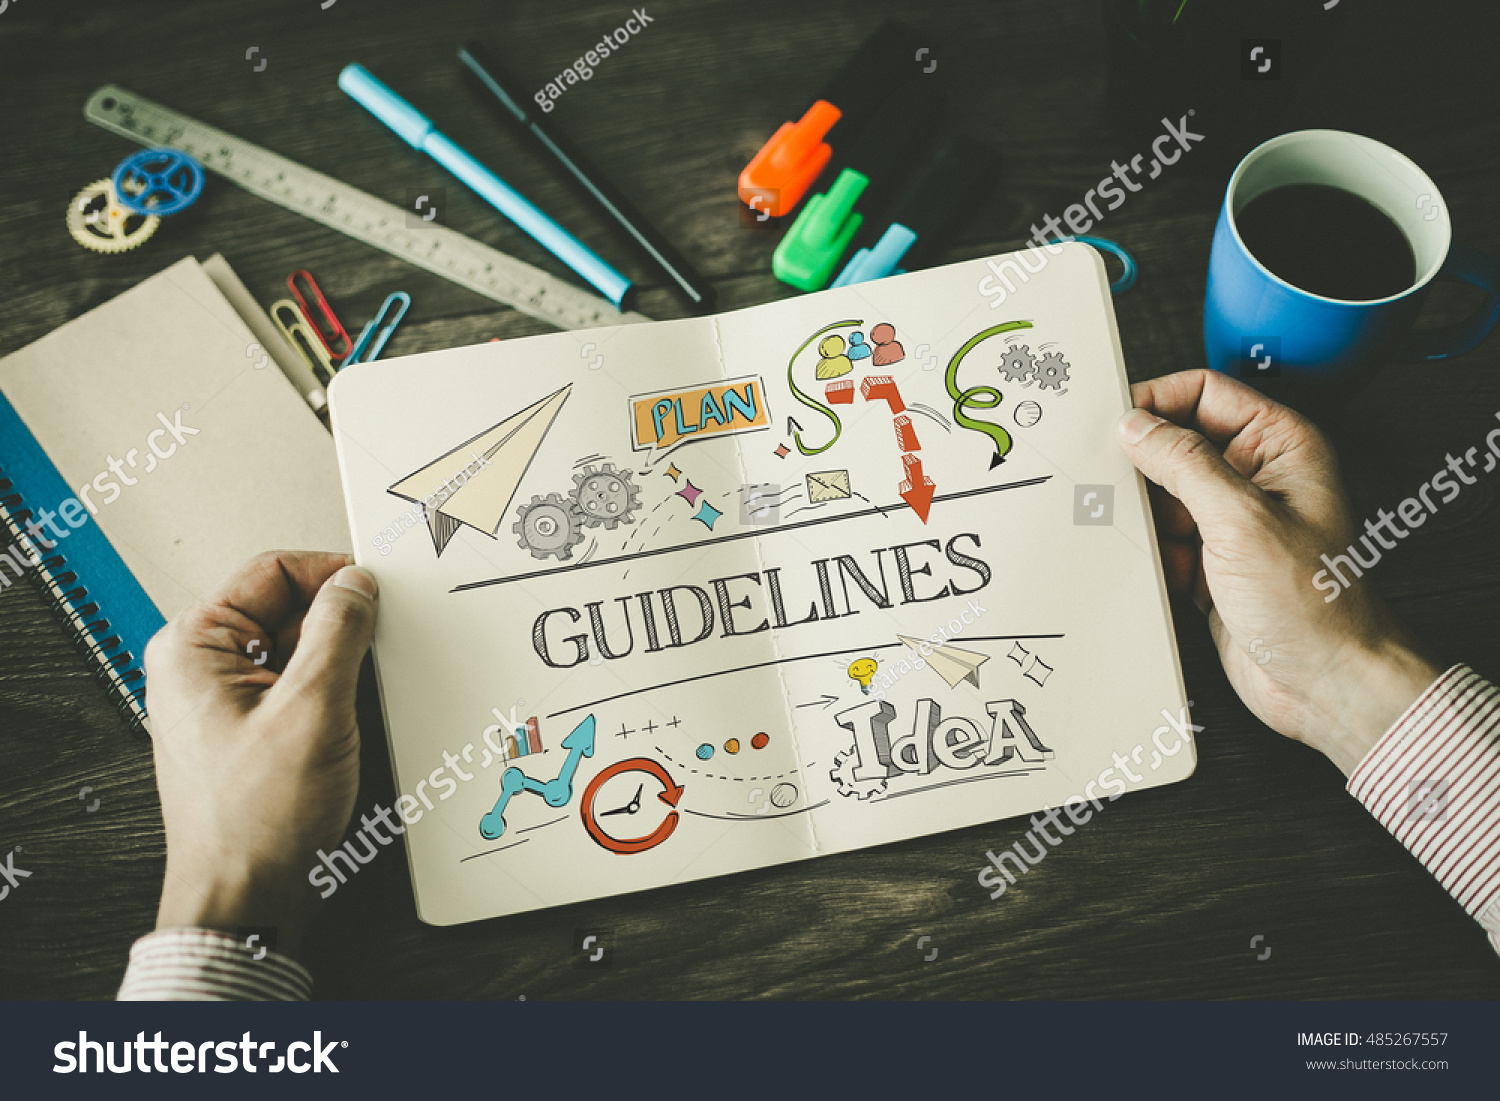 stock-photo-guidelines-sketch-on-notebook-485267557